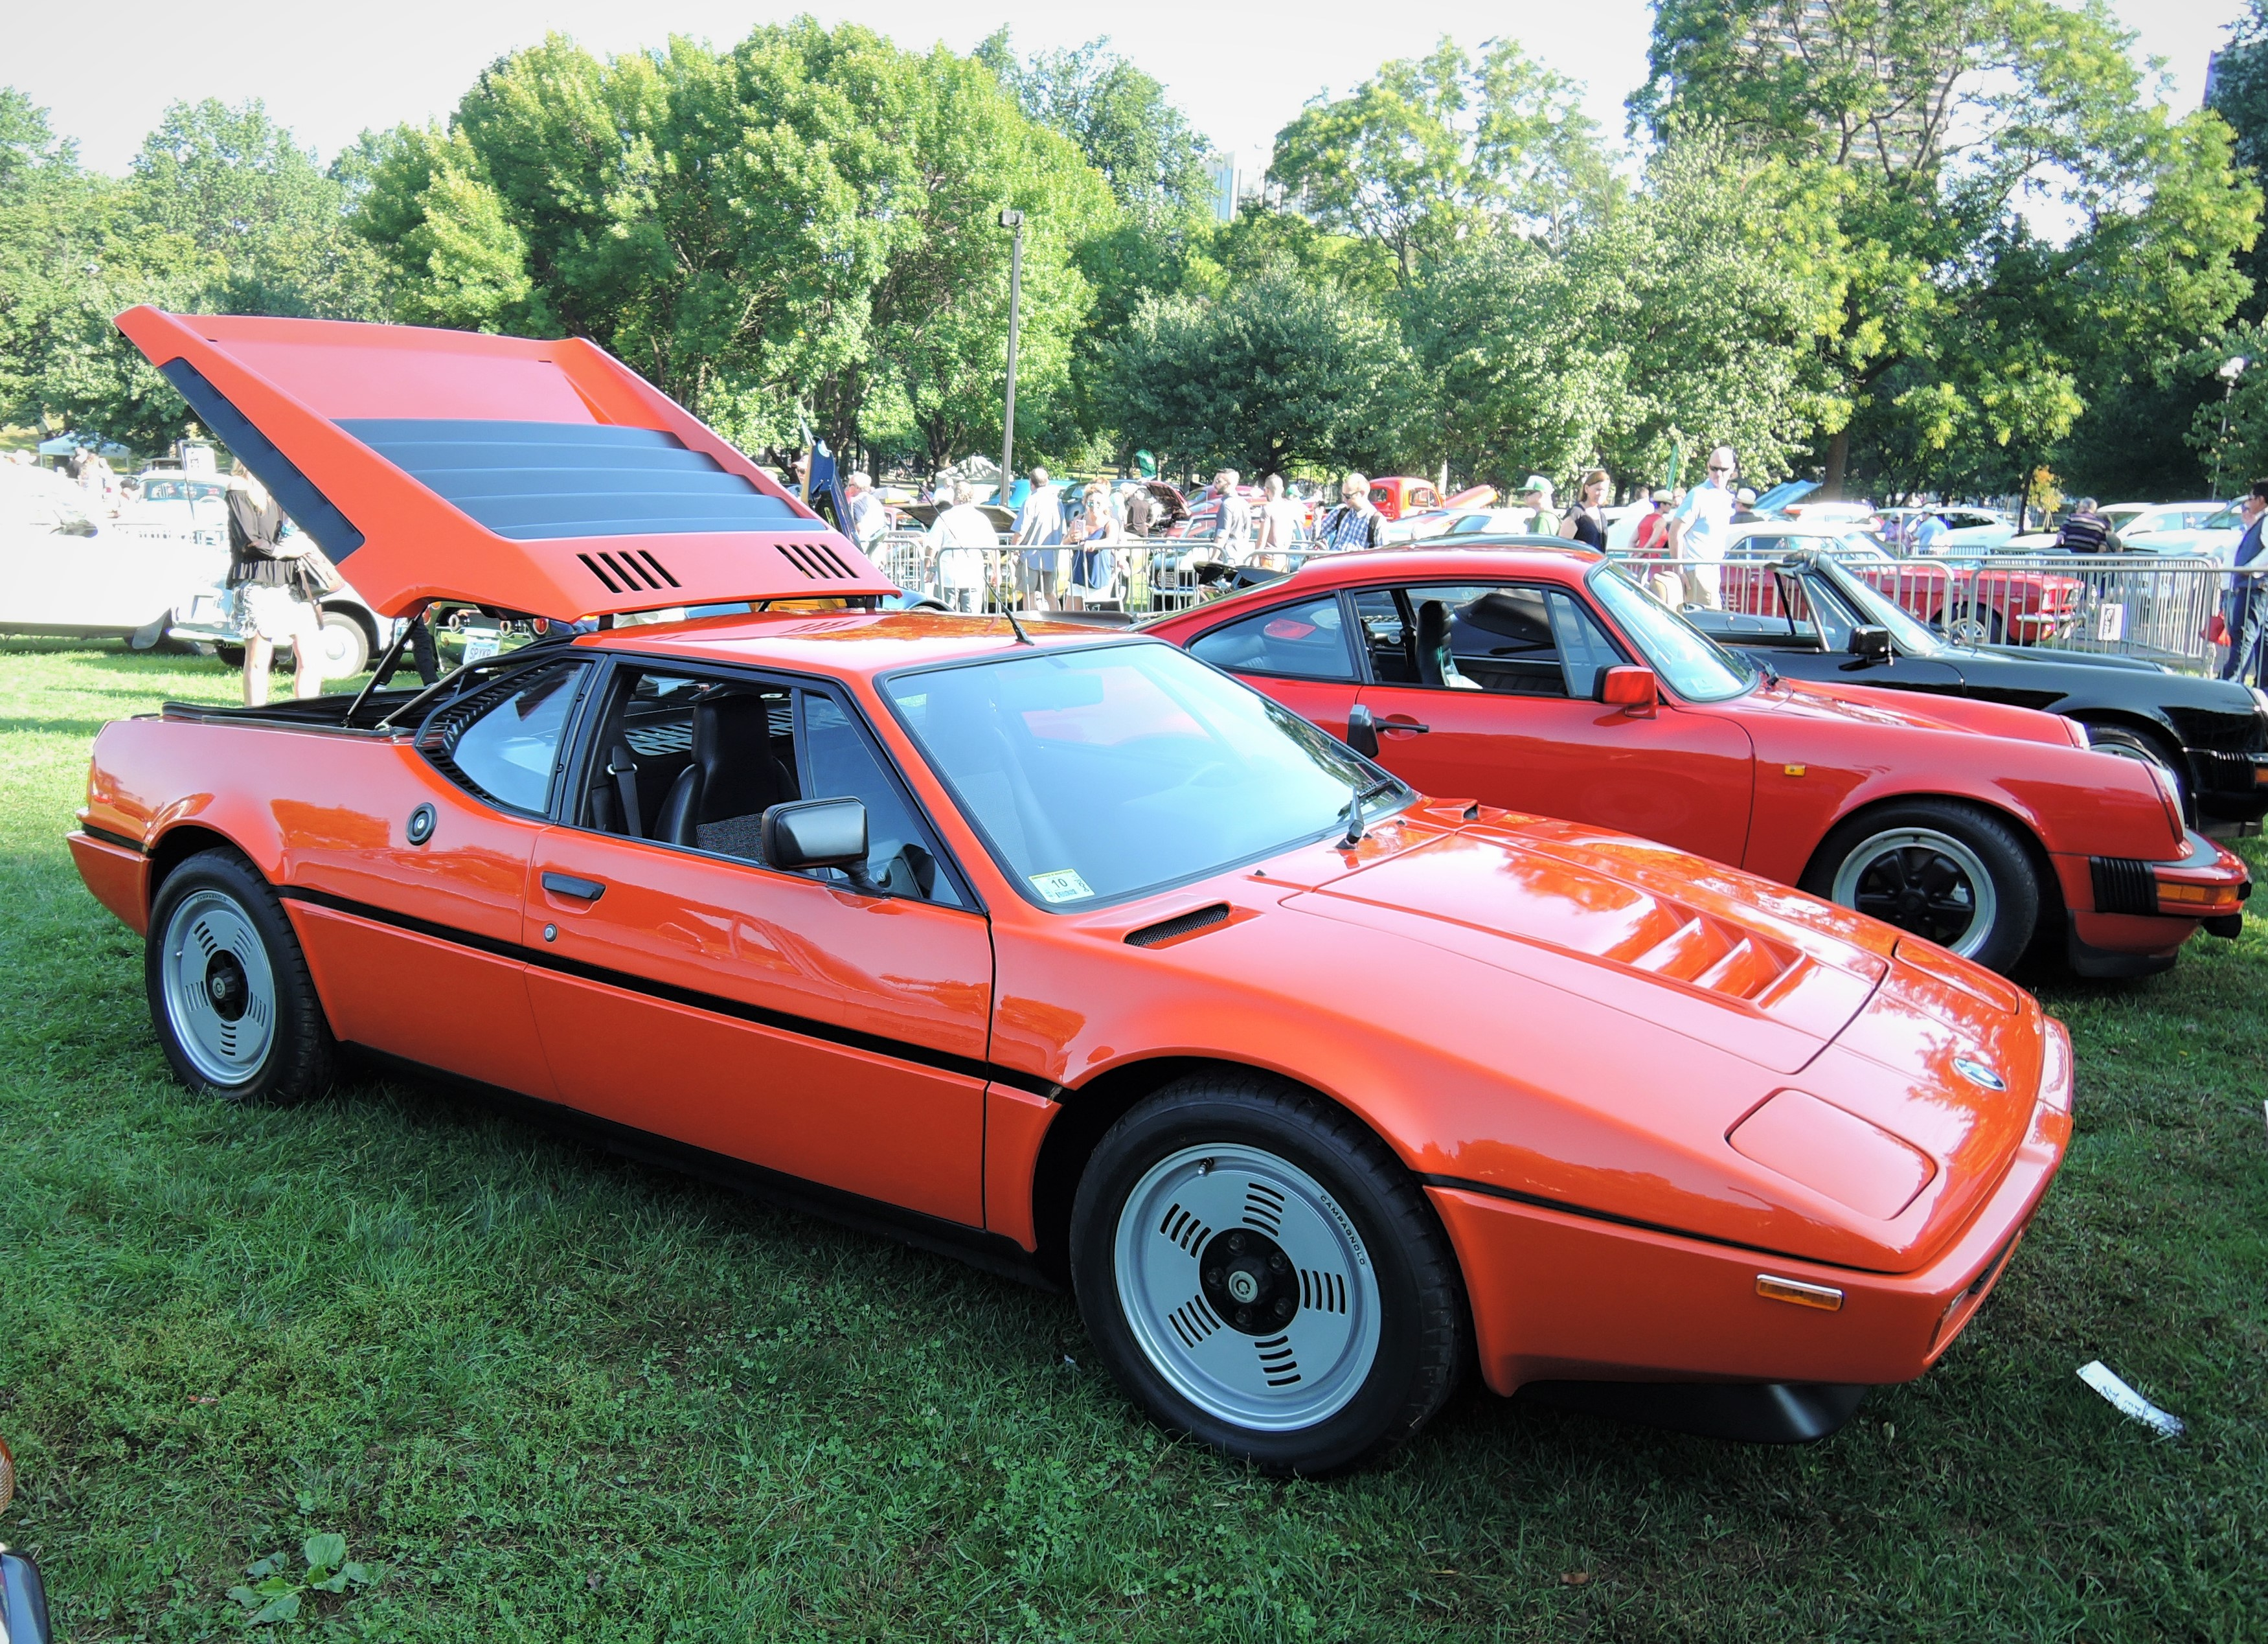 orange 1980 BMW M1 - The Boston Cup 2017